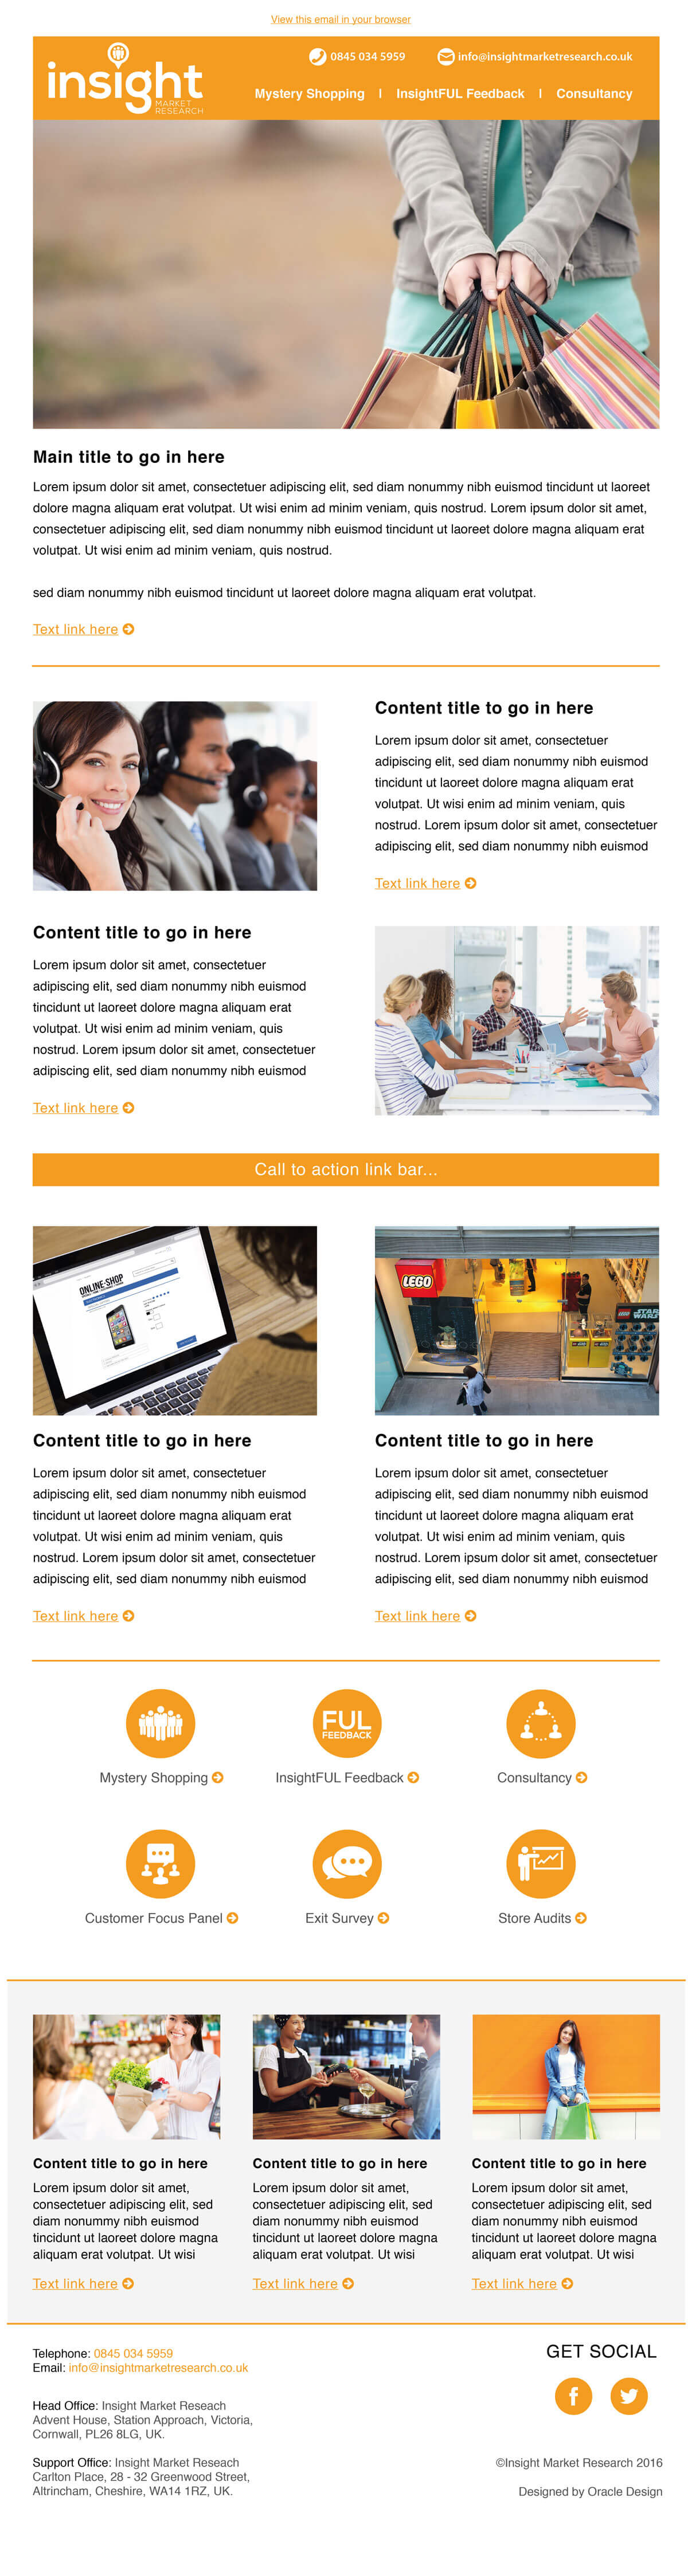 Email newsletter design Cornwall